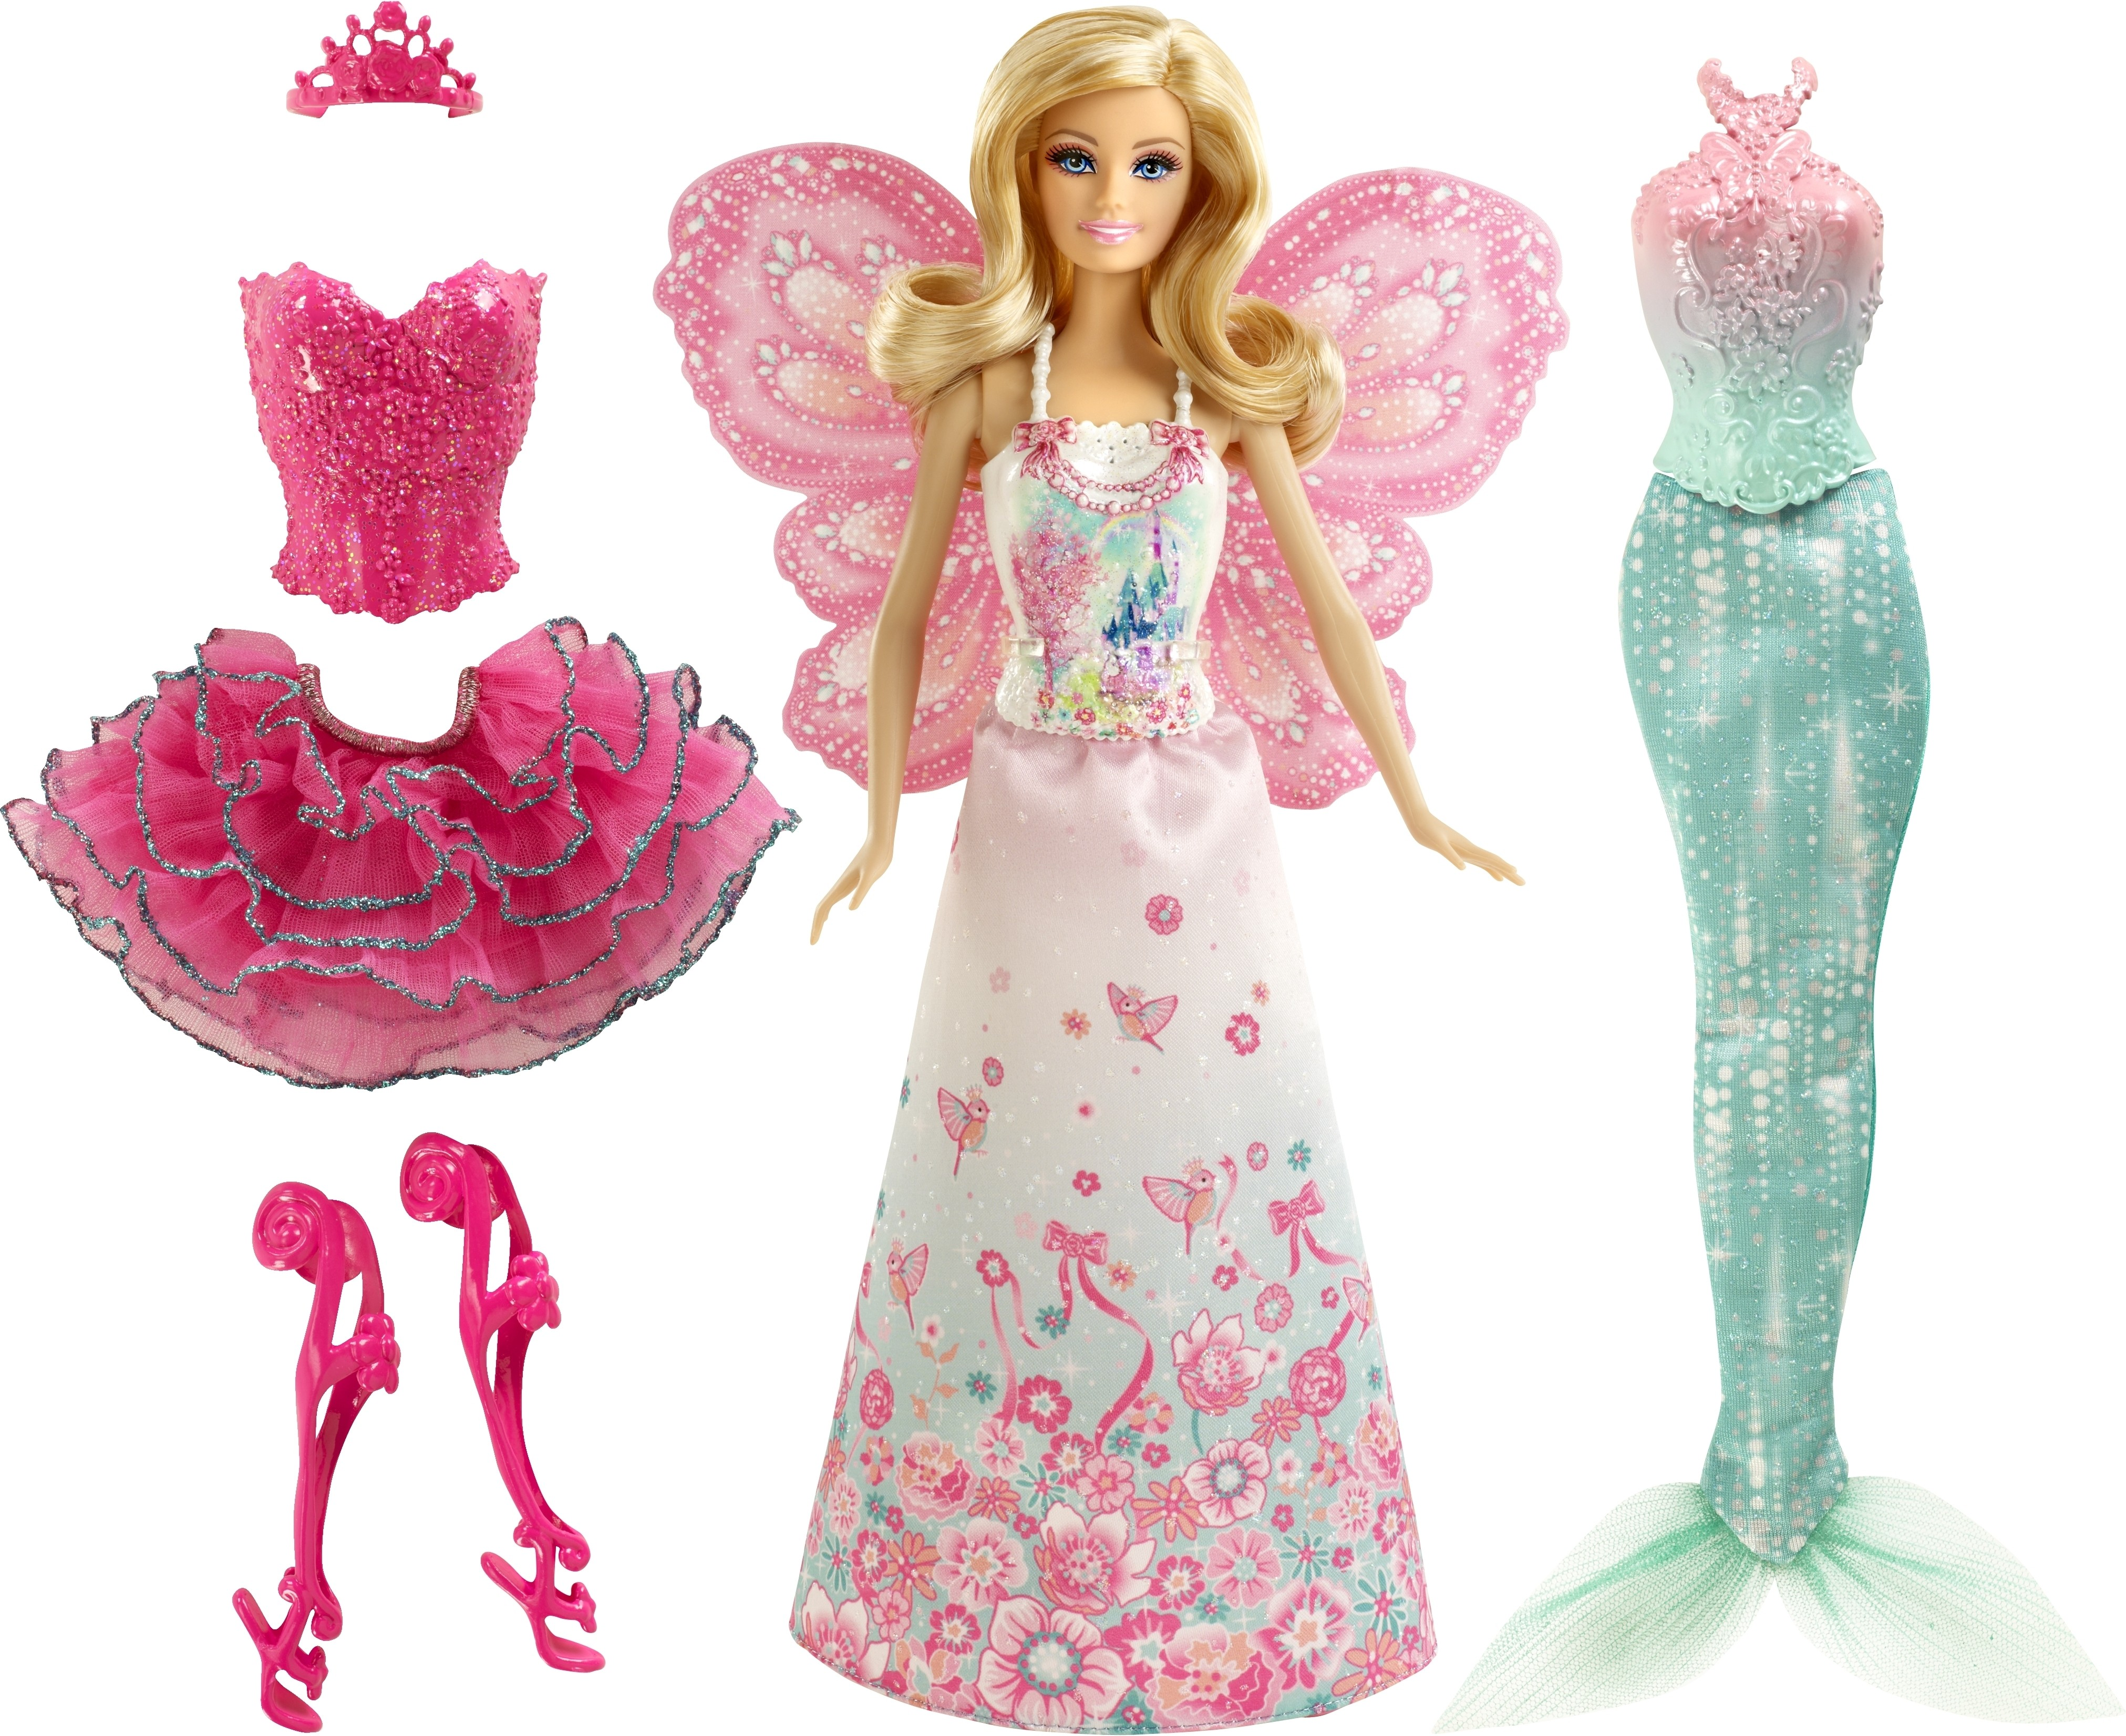 Barbie Fairytale Dressup Fairytale Dressup Shop For Barbie Products In India Toys For 3 6